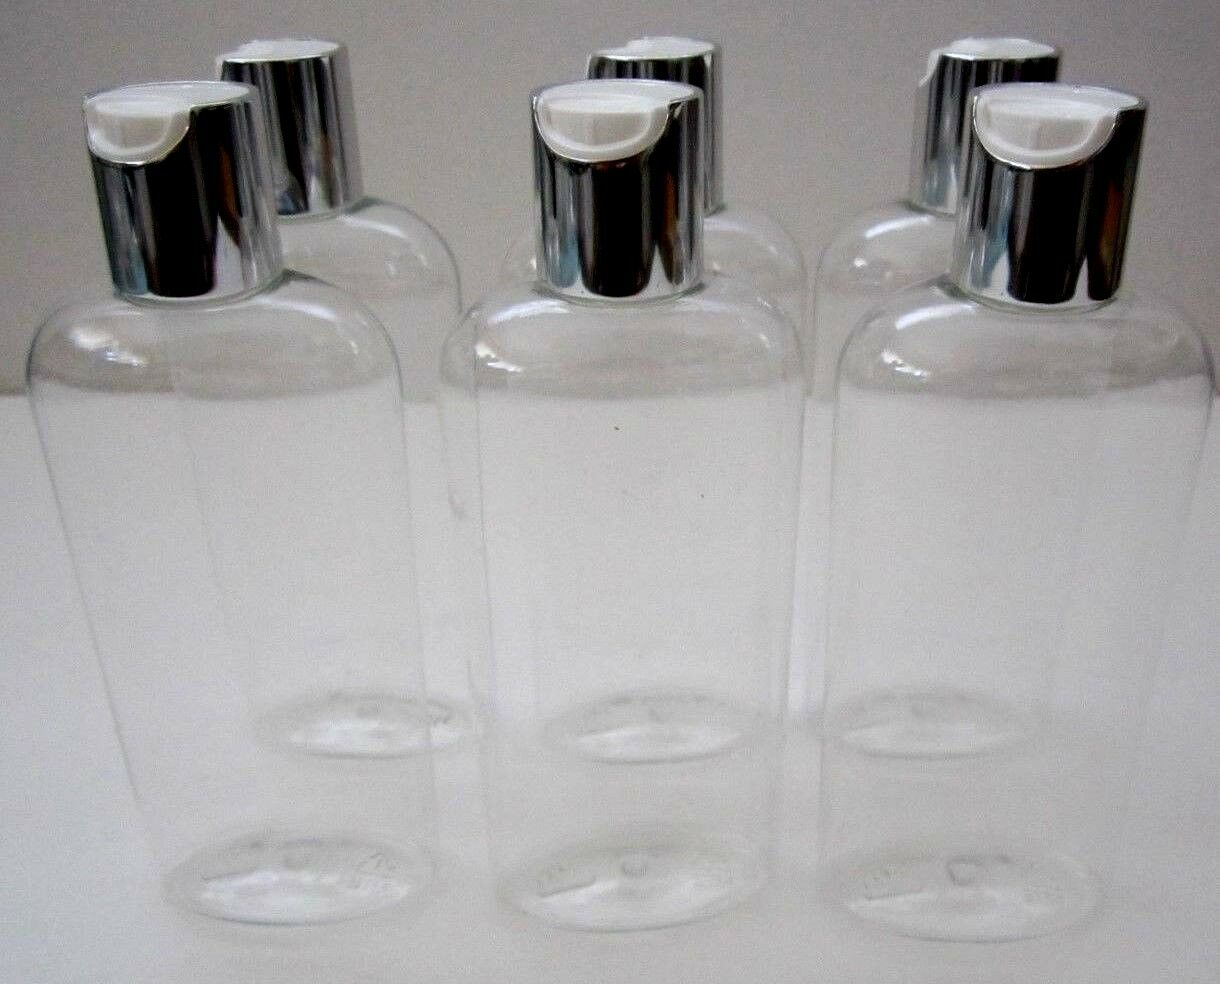 6 oz Qty 6 King PET Plastic Bottles Clear Oval Silver White